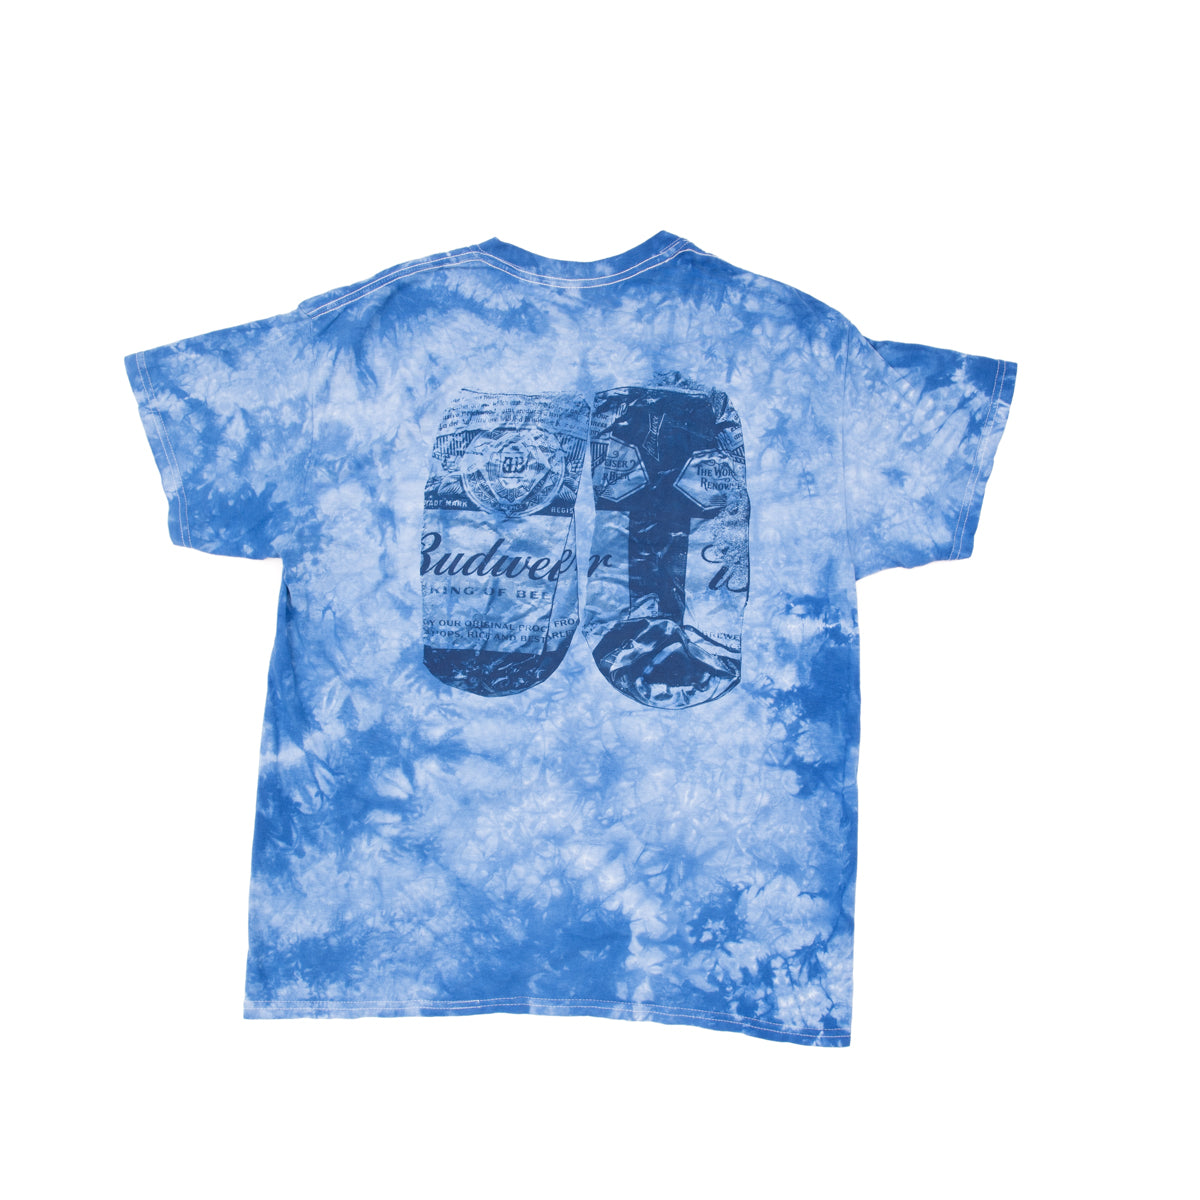 Crushed Dye - Blue